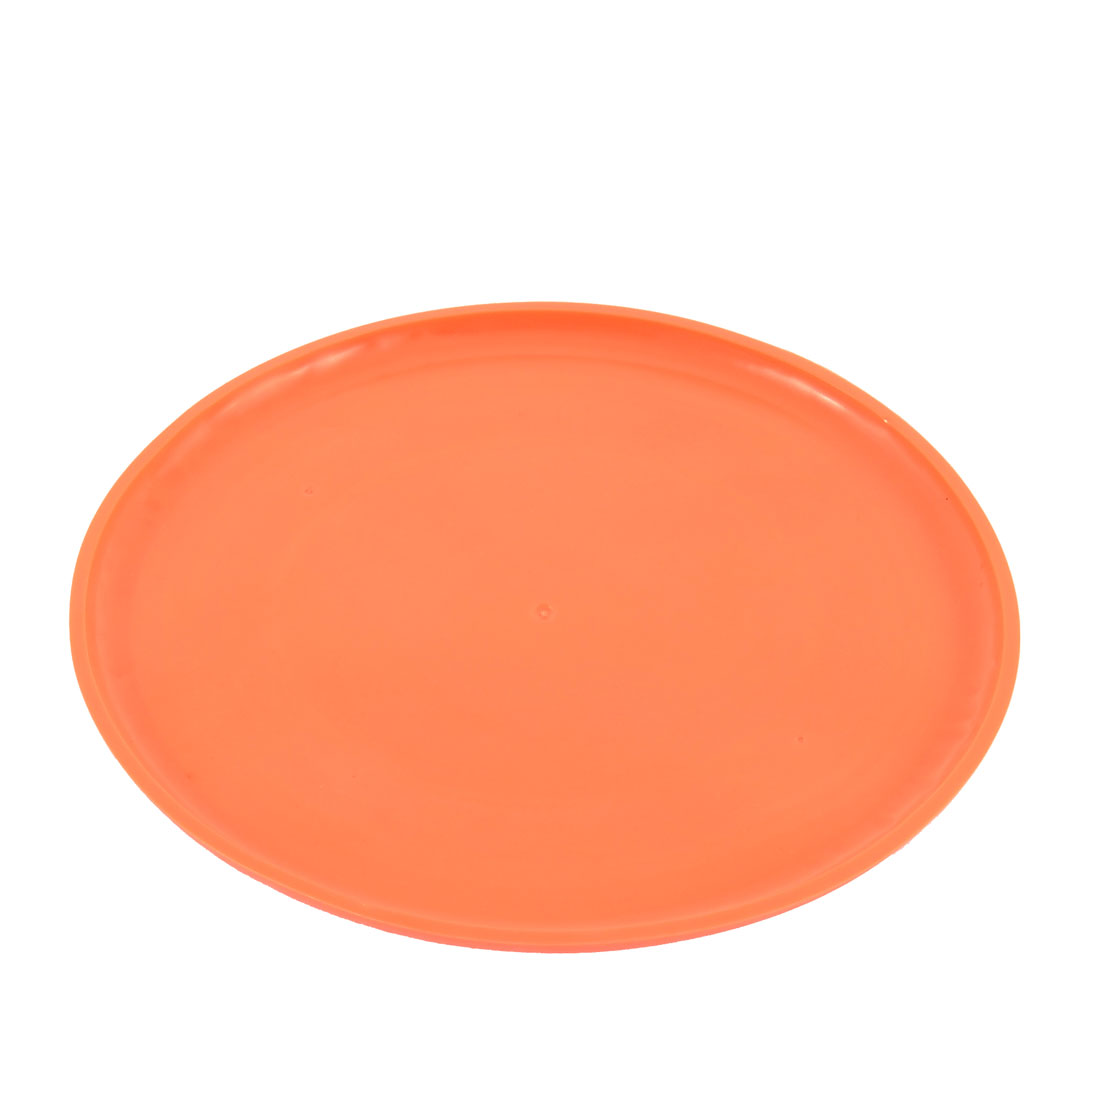 "Orange Round Silicone 6.9"" Dia Exercising Flying Frisbee Toy for Pet Doggie"